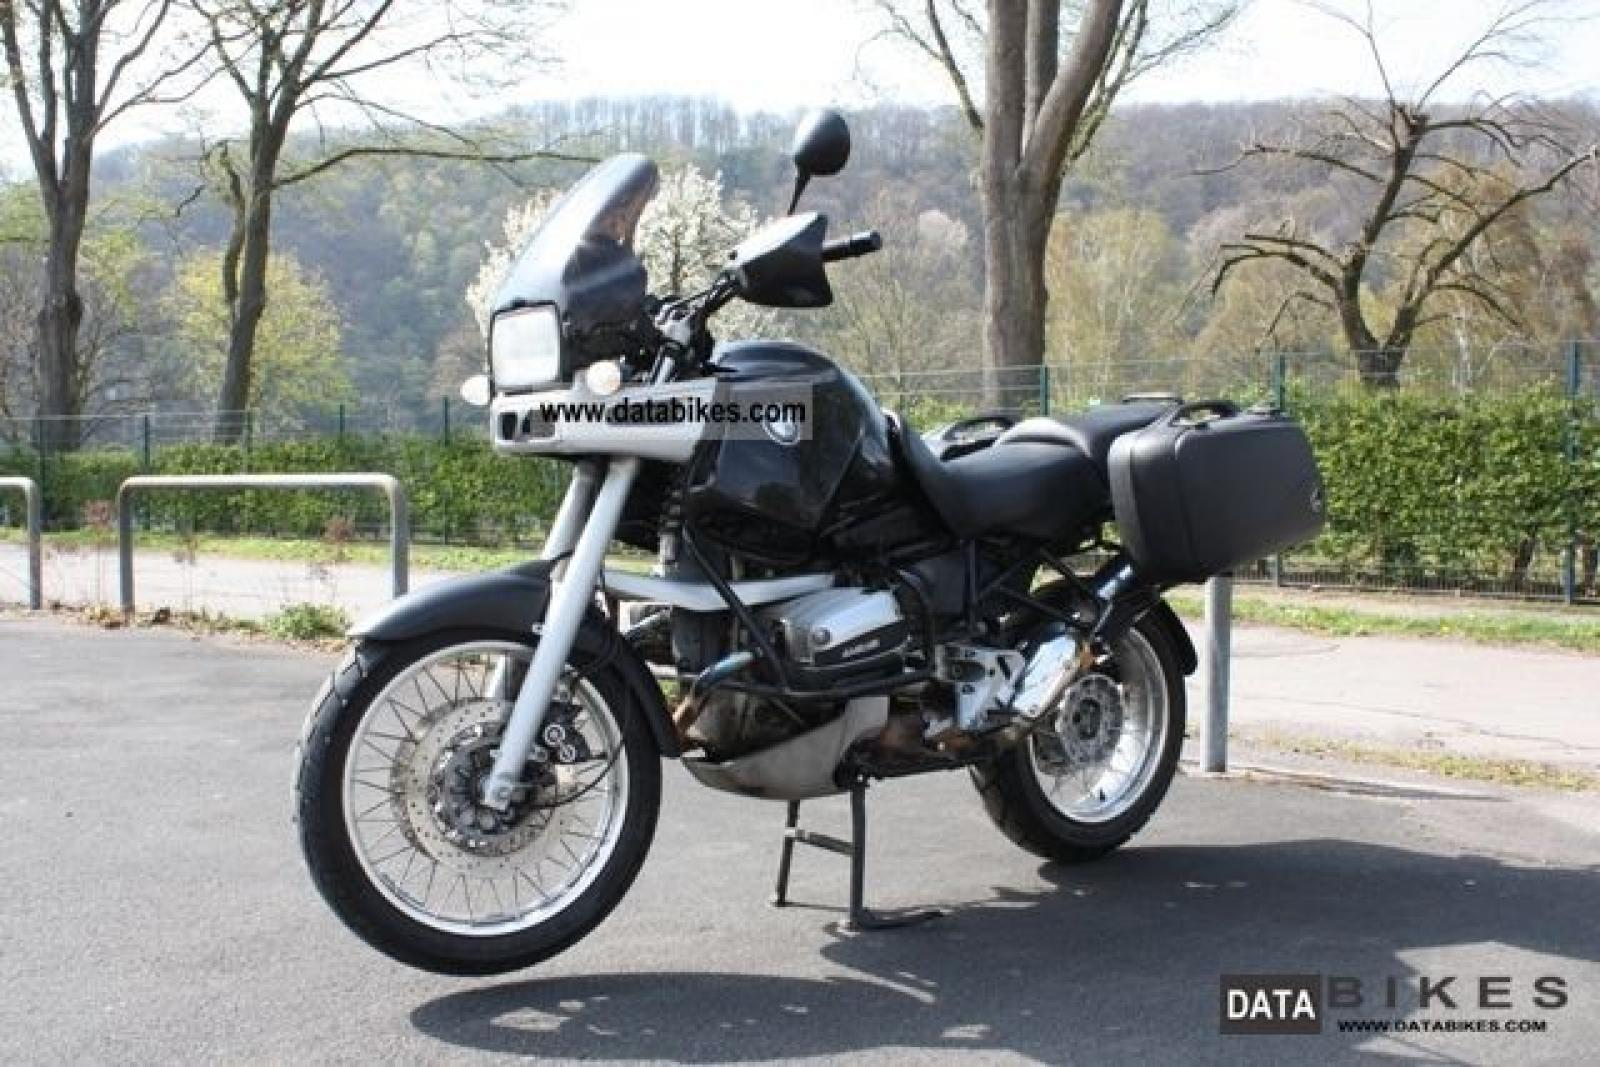 BMW R1100GS 1998 images #6331